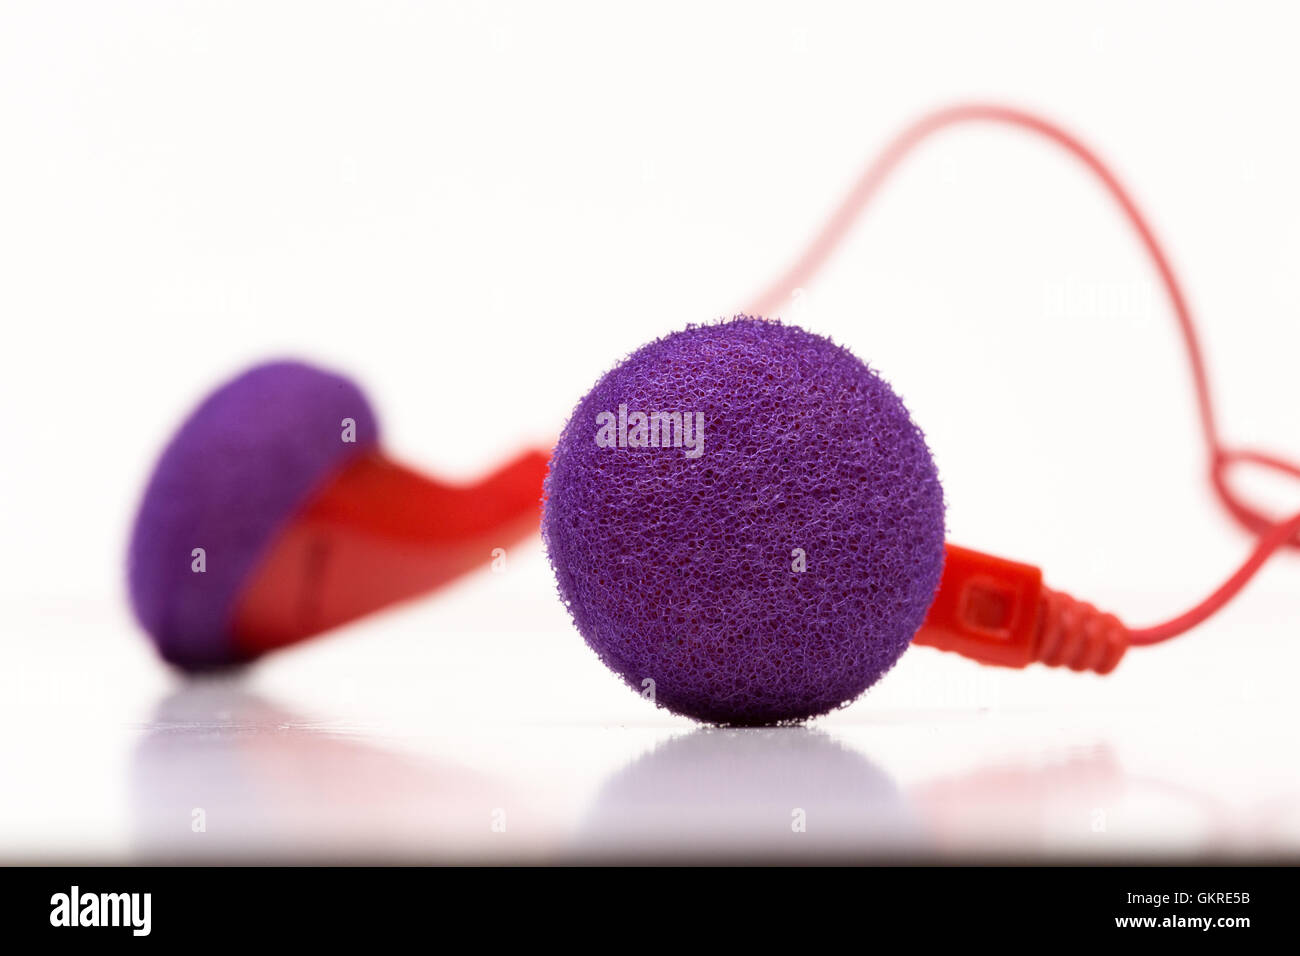 Pop Colors Stock Photos Images Alamy Earphone Packing Mika Earphones Image